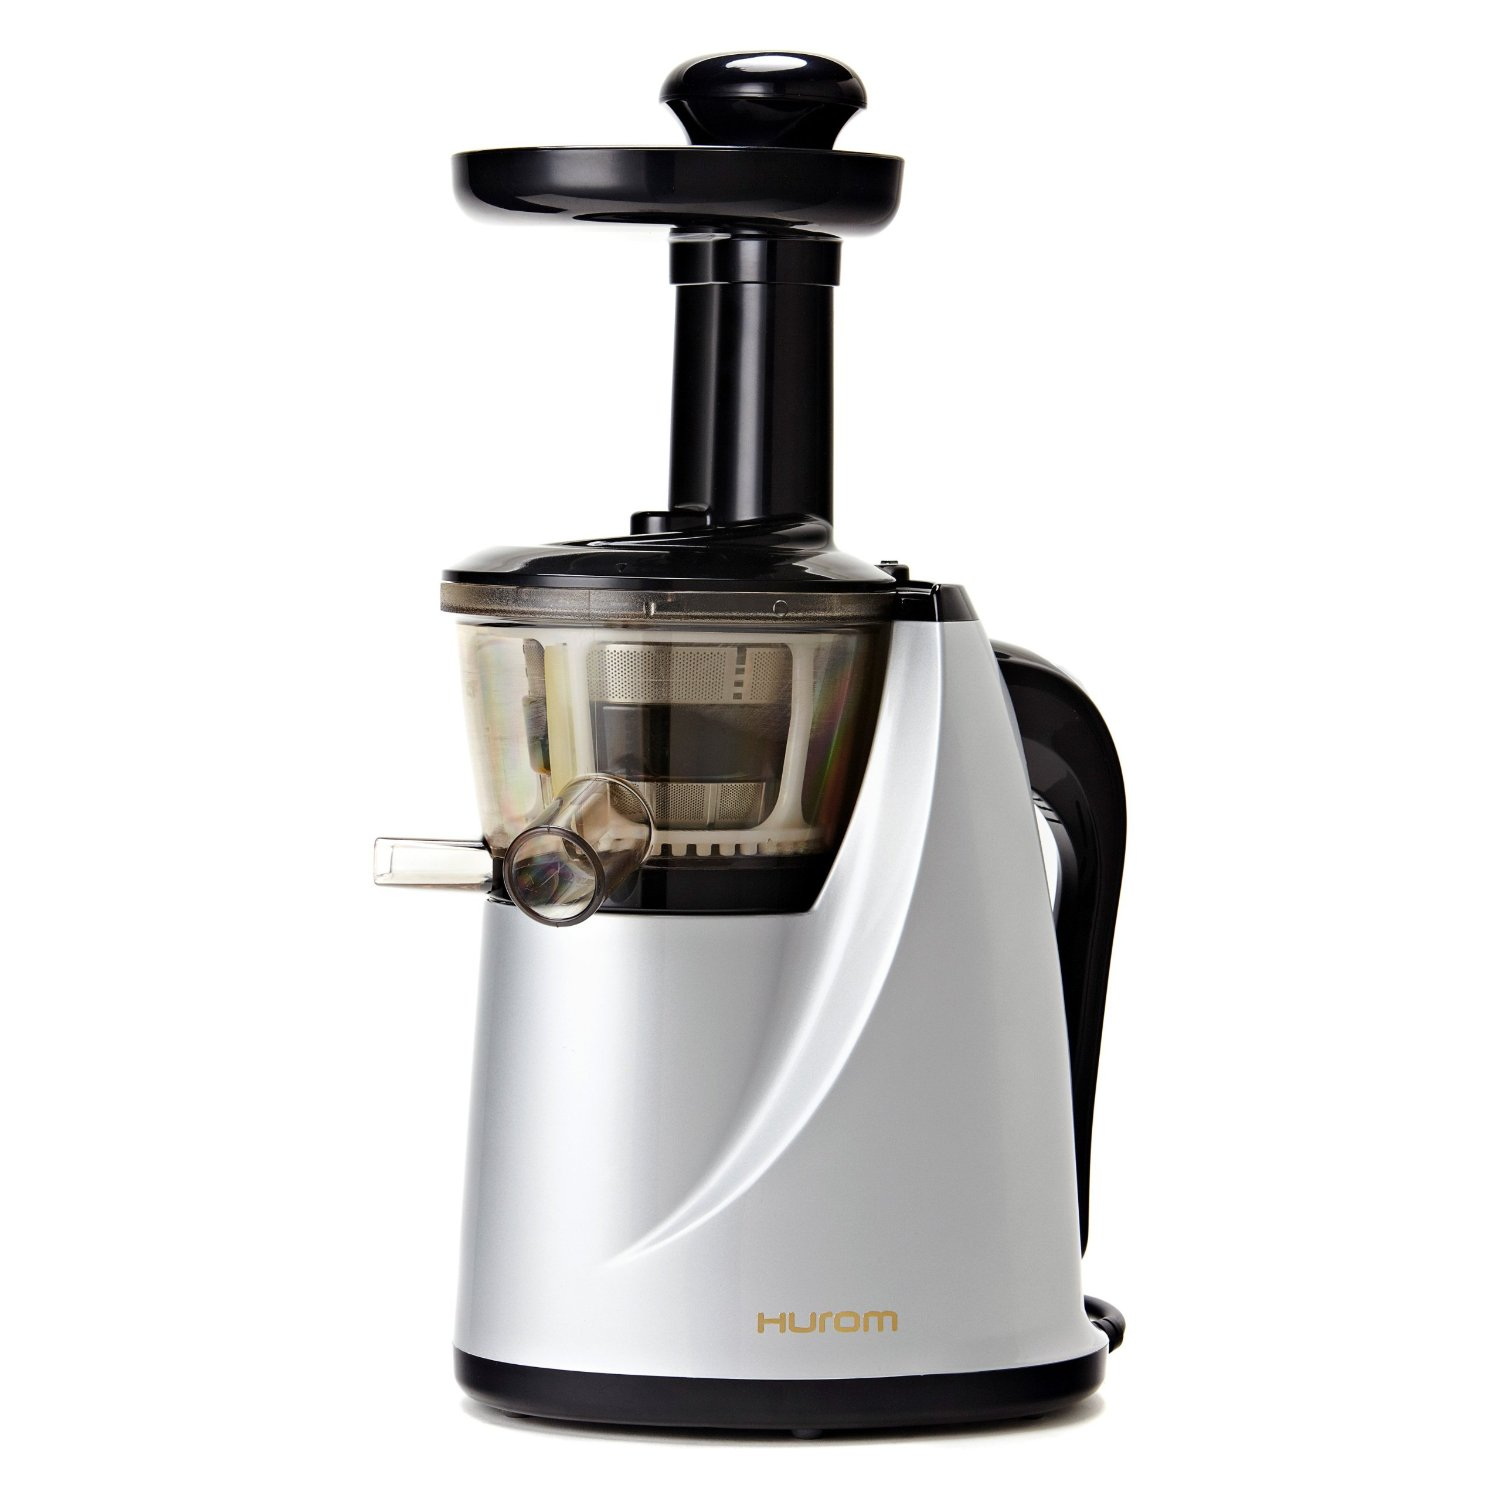 Juice Wizard Slow Juicer : Hurom HU-100 Masticating Slow Juicer Review - Best Cold Press Juicers